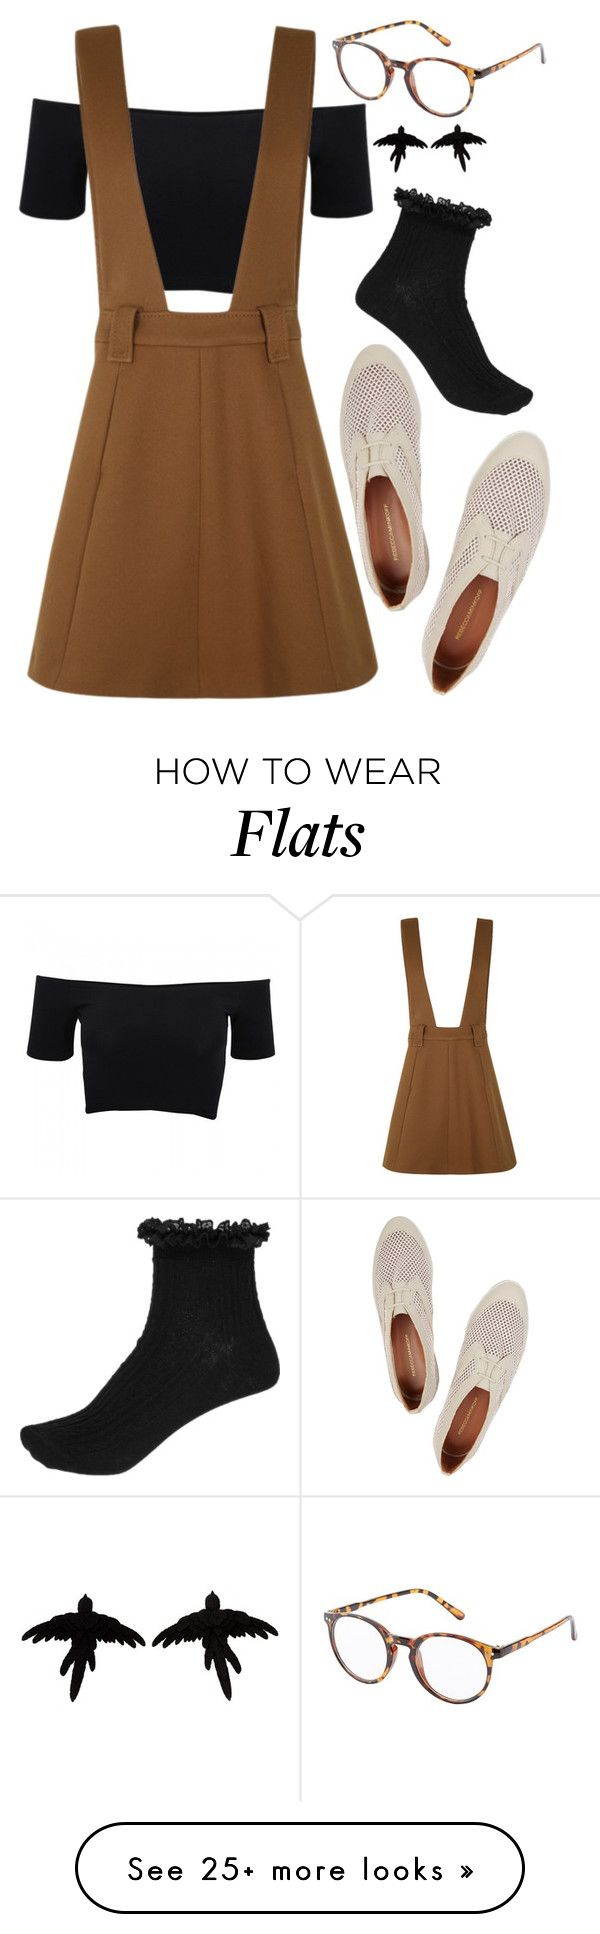 """""""Untitled #750"""" by samantha-hannum on Polyvore featuring American Apparel, Dorothee Schumacher, Rebecca Minkoff, Charlotte Russe and olgafacesrok"""